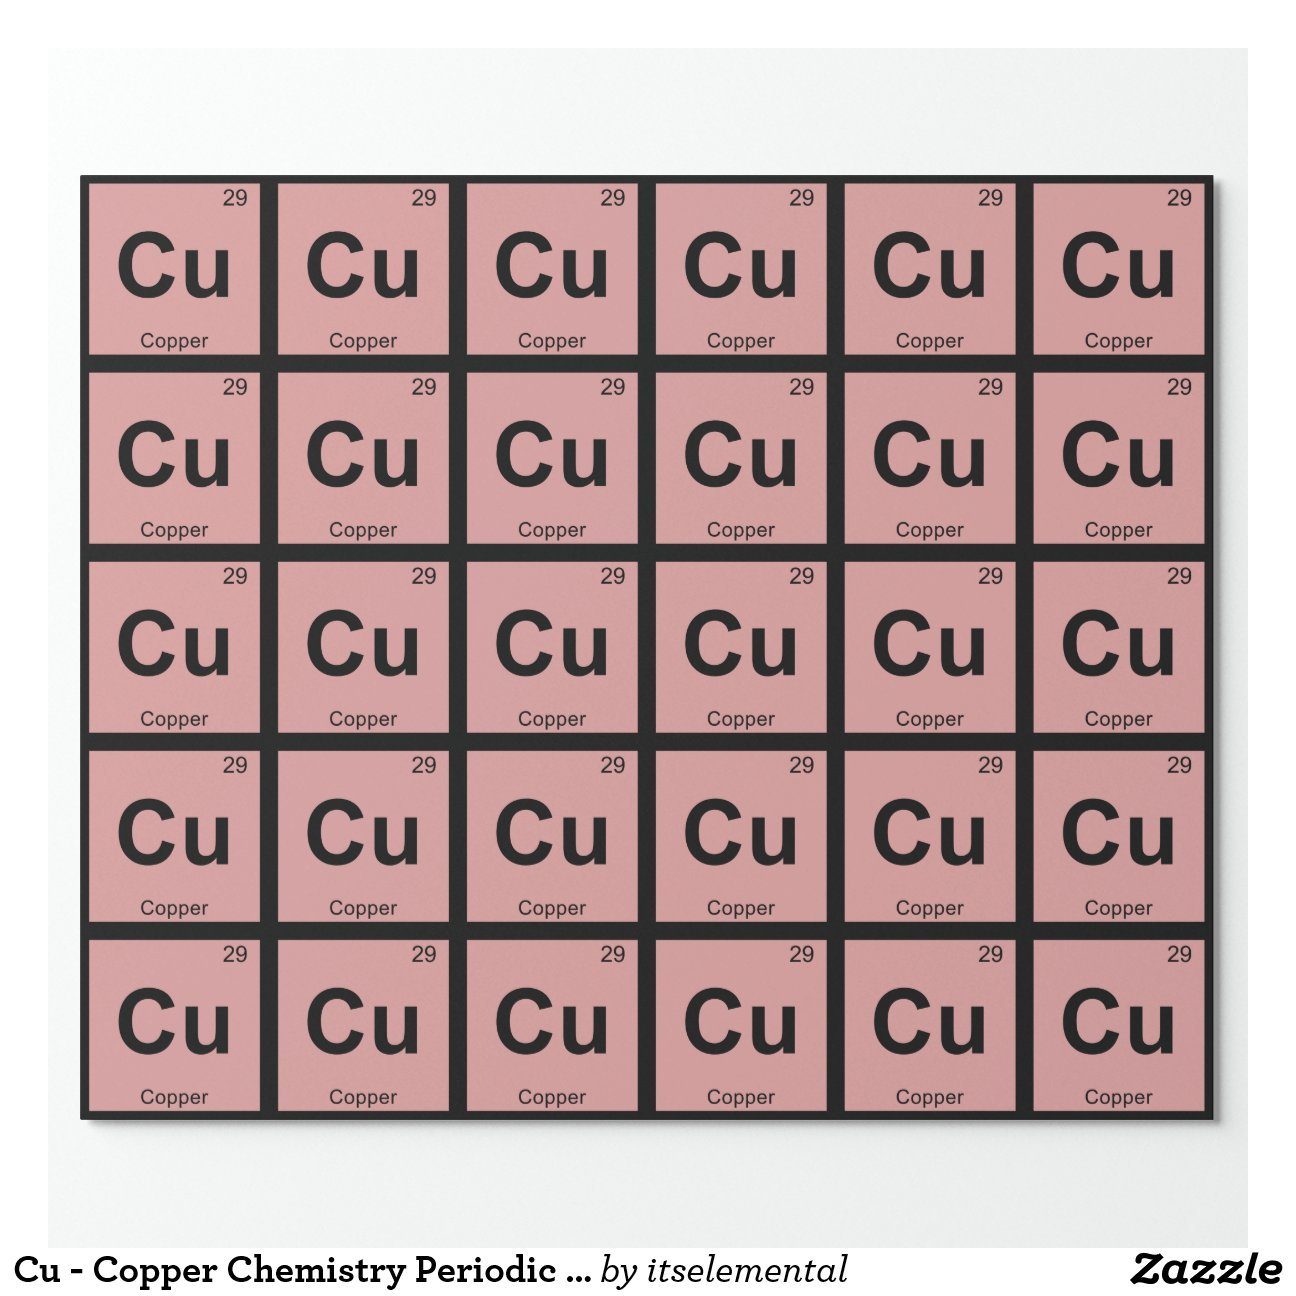 Copper abbreviation periodic table images periodic table images alcohol periodic table symbol gallery periodic table images periodic table copper symbol gallery periodic table images gamestrikefo Gallery